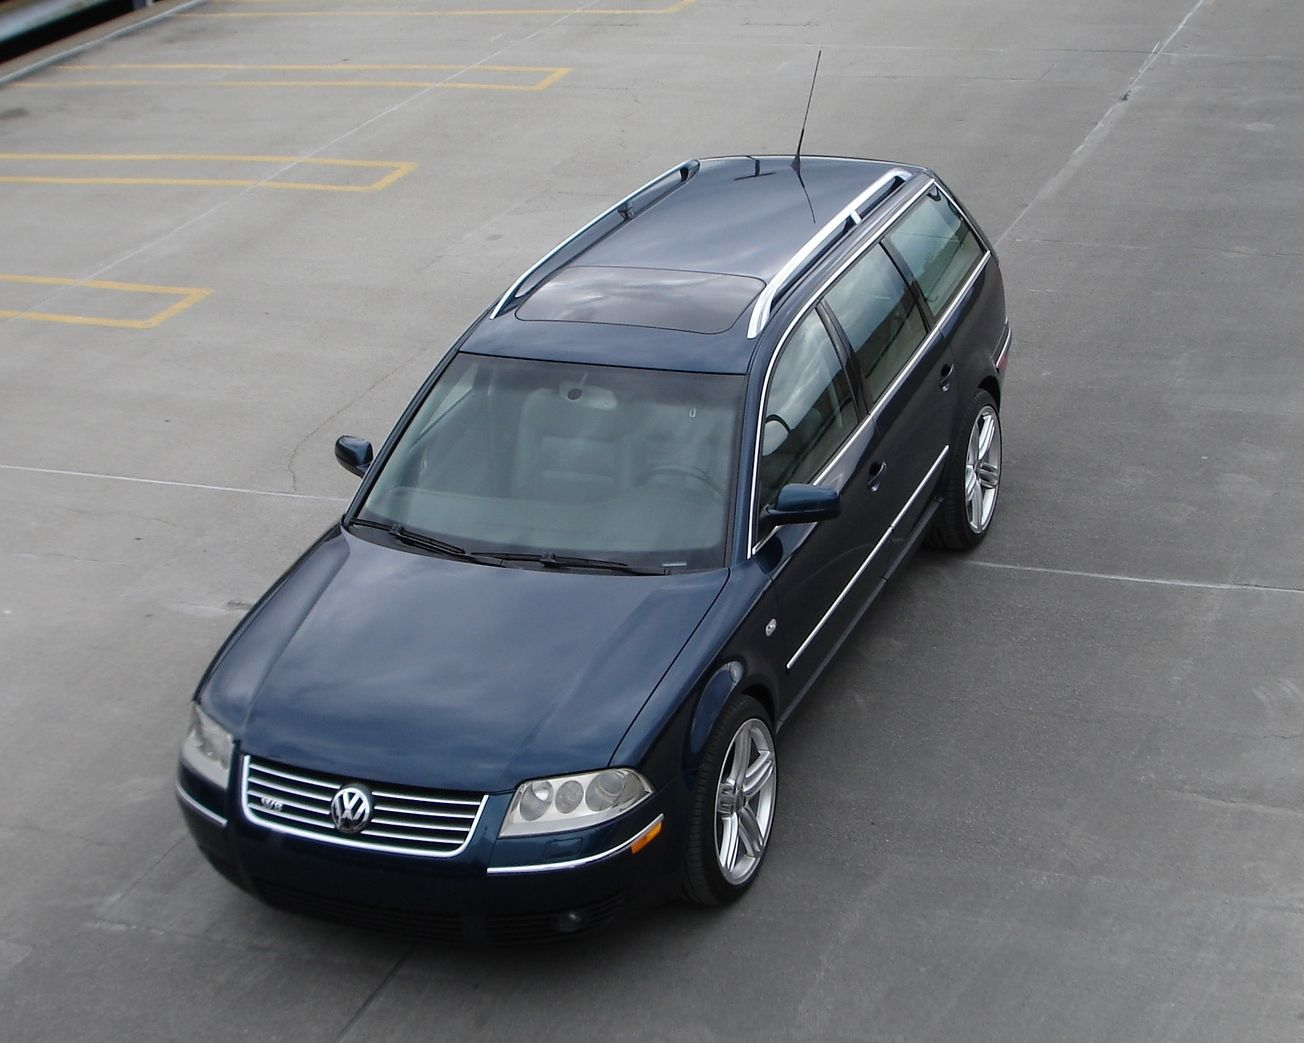 daily turismo auction watch 2003 volkswagen passat w8 6 speed. Black Bedroom Furniture Sets. Home Design Ideas